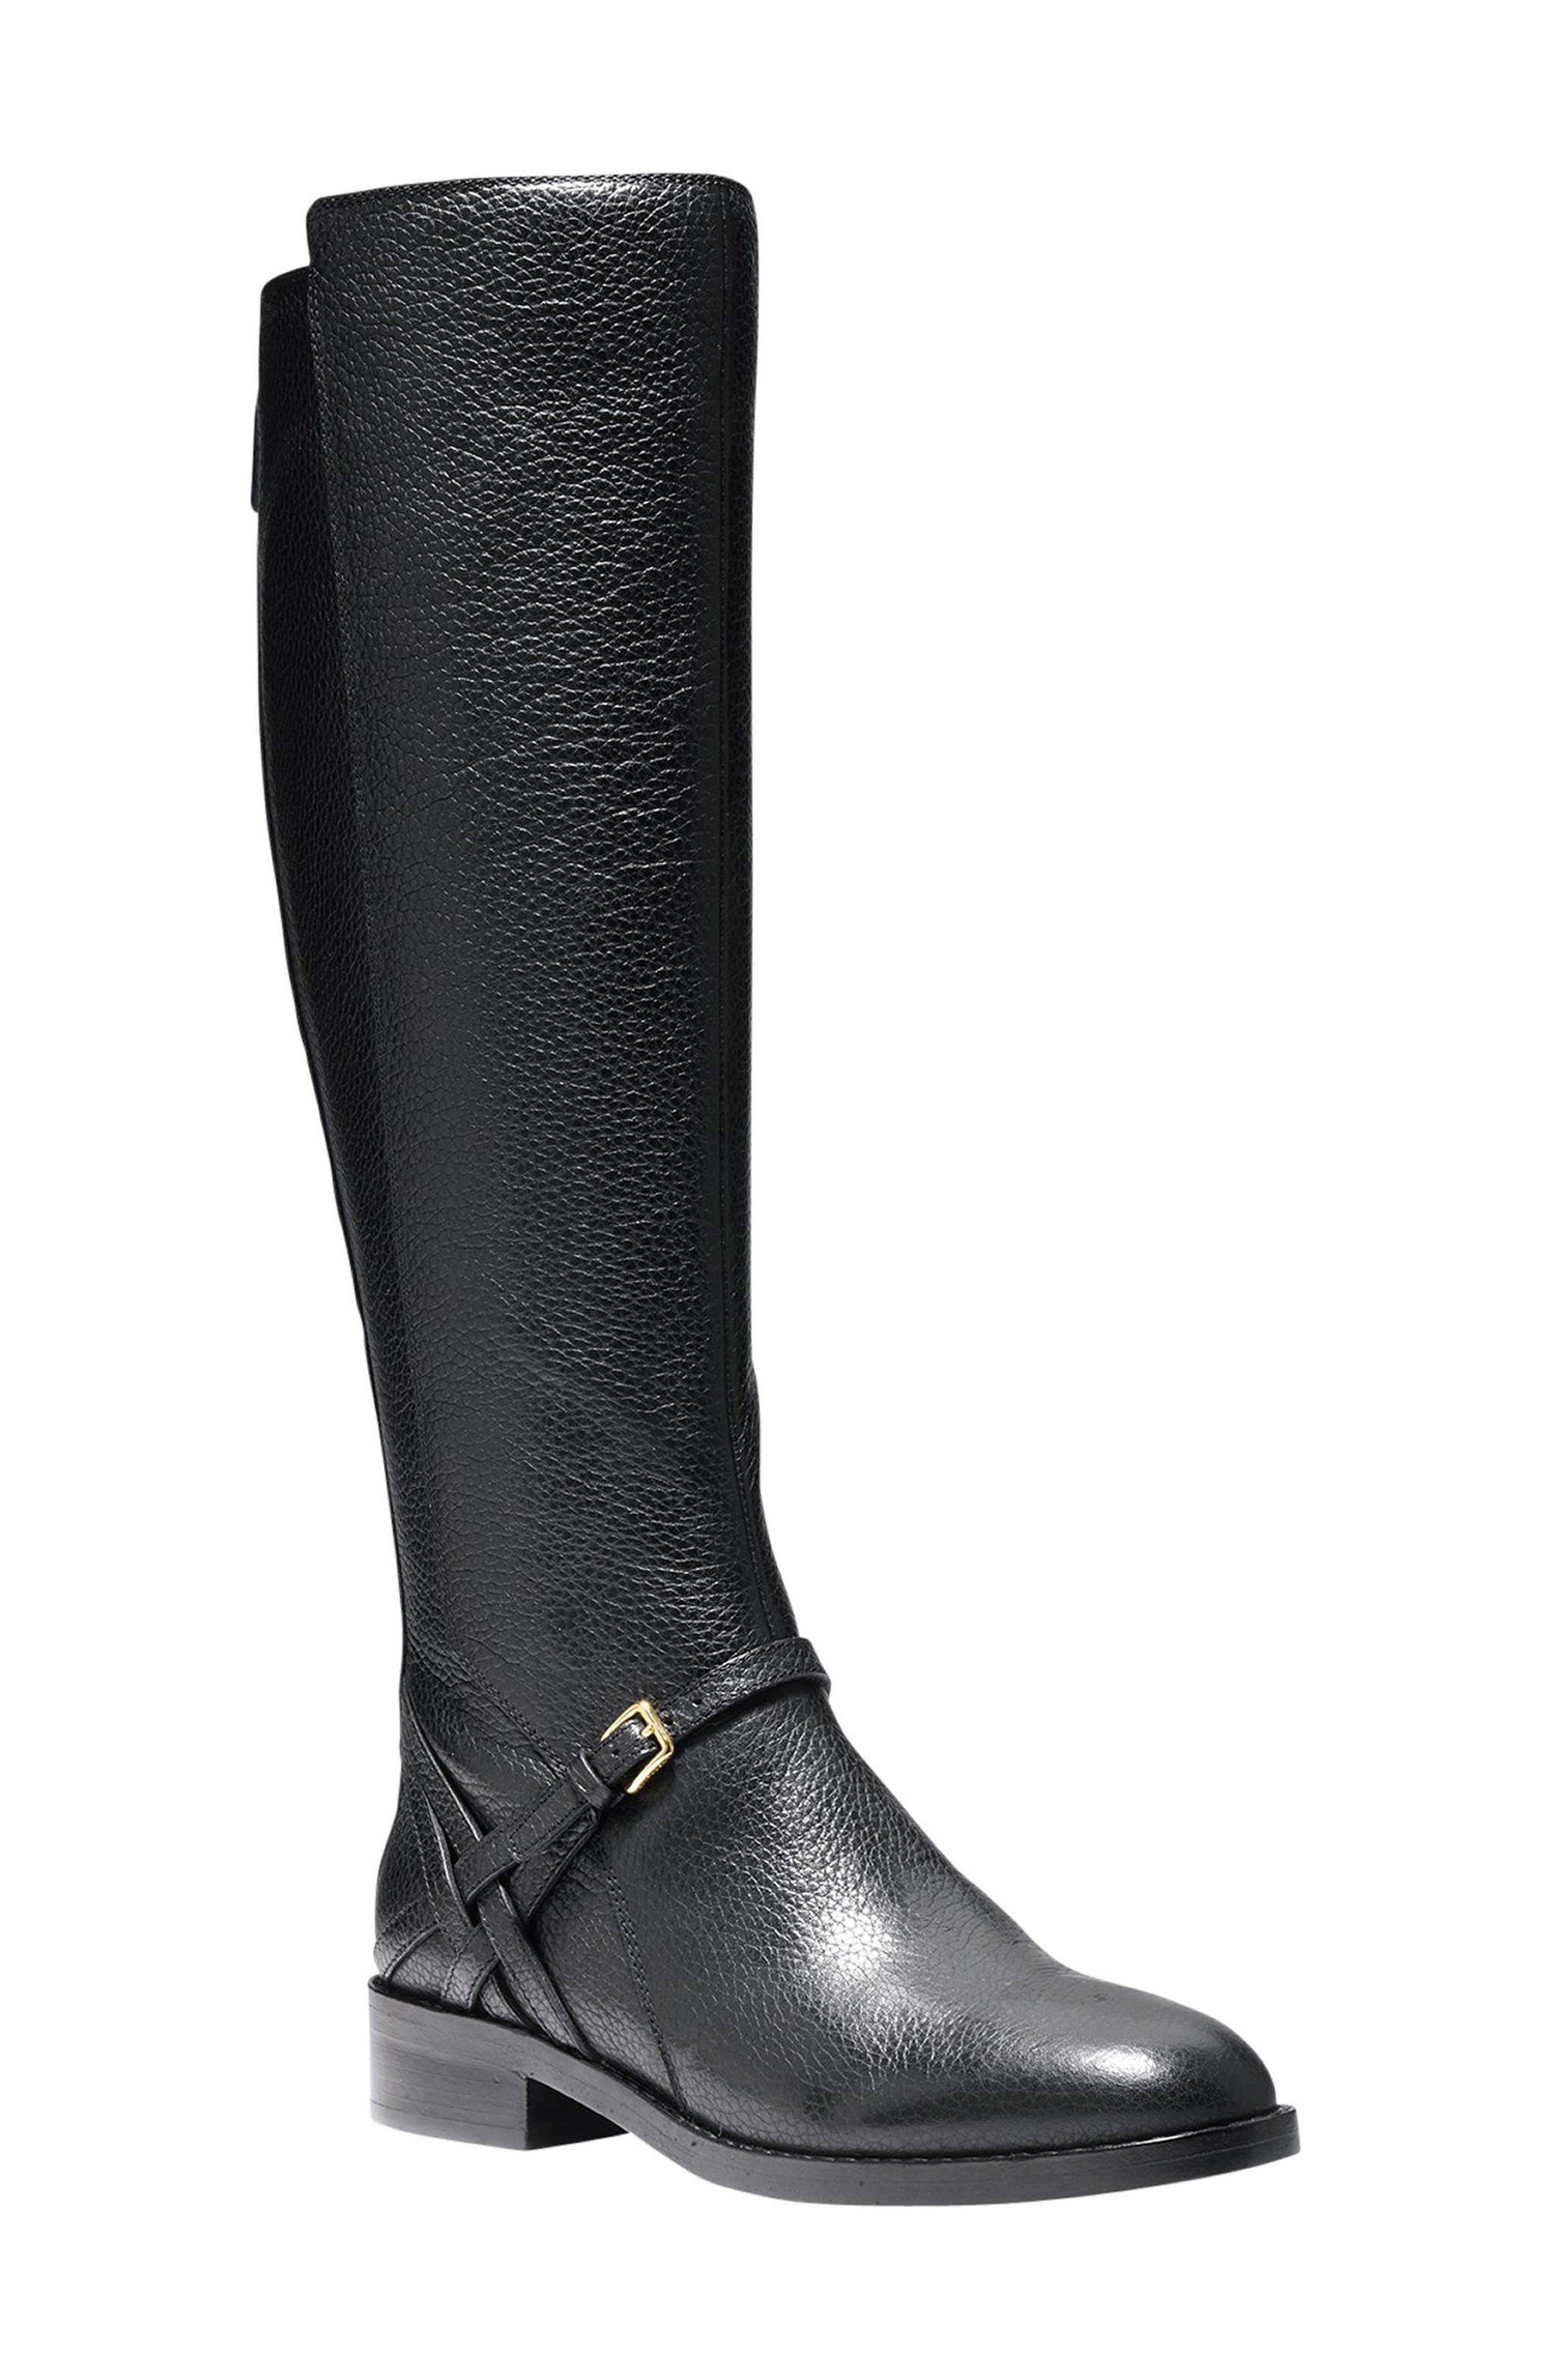 Alternate Image 1 Selected - Cole Haan Pearlie Tall Boot (Women)